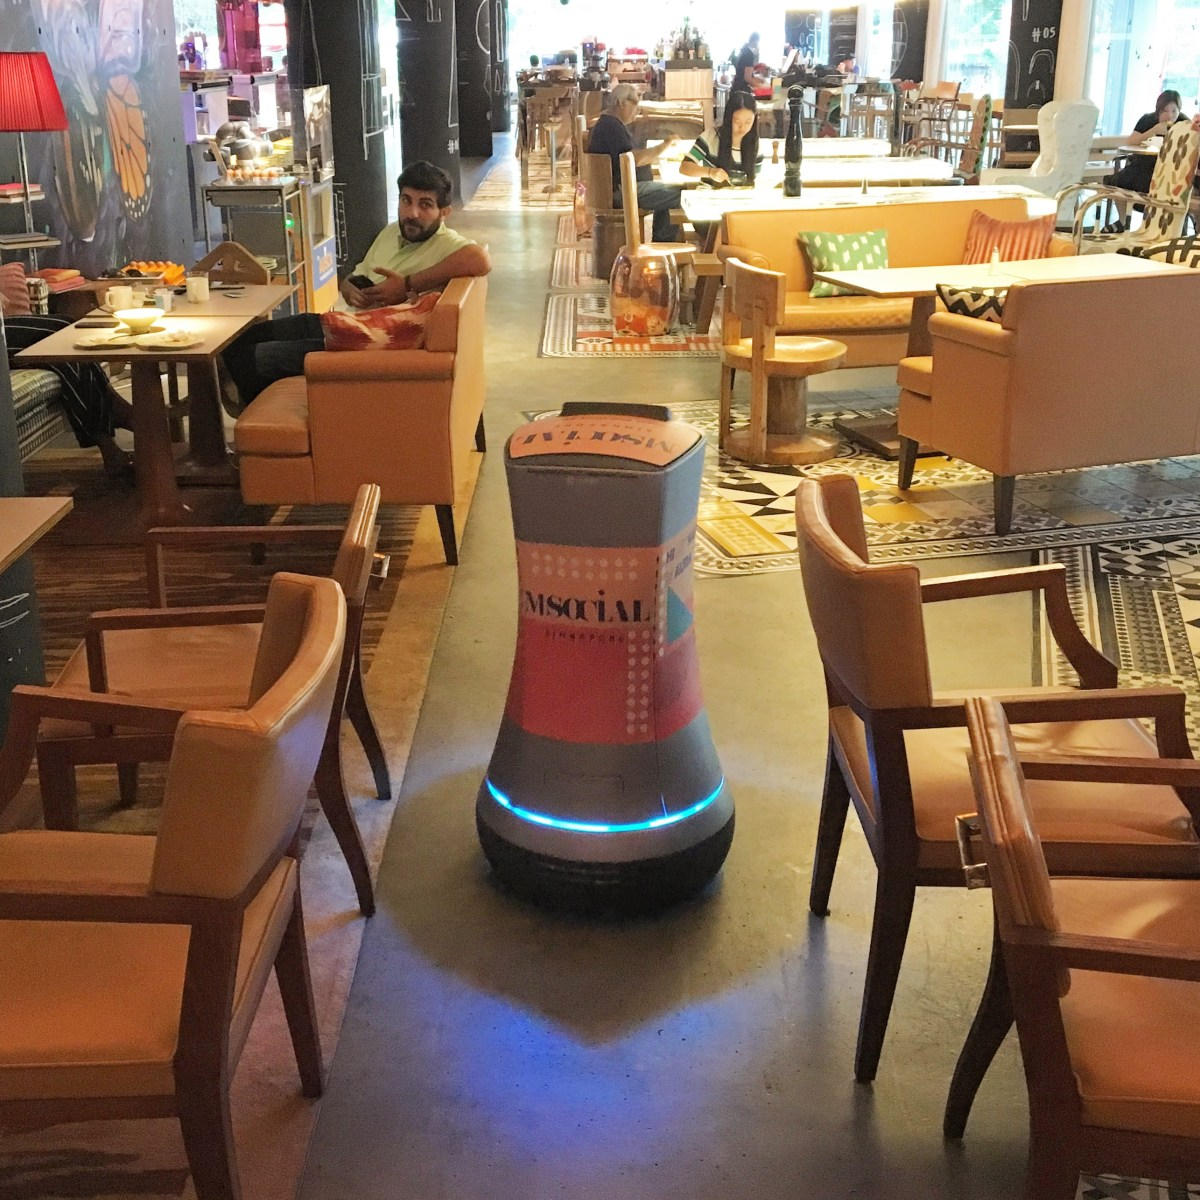 Singapore's M Social Hotel - A Robot Who Delivers Direct To Your Room!